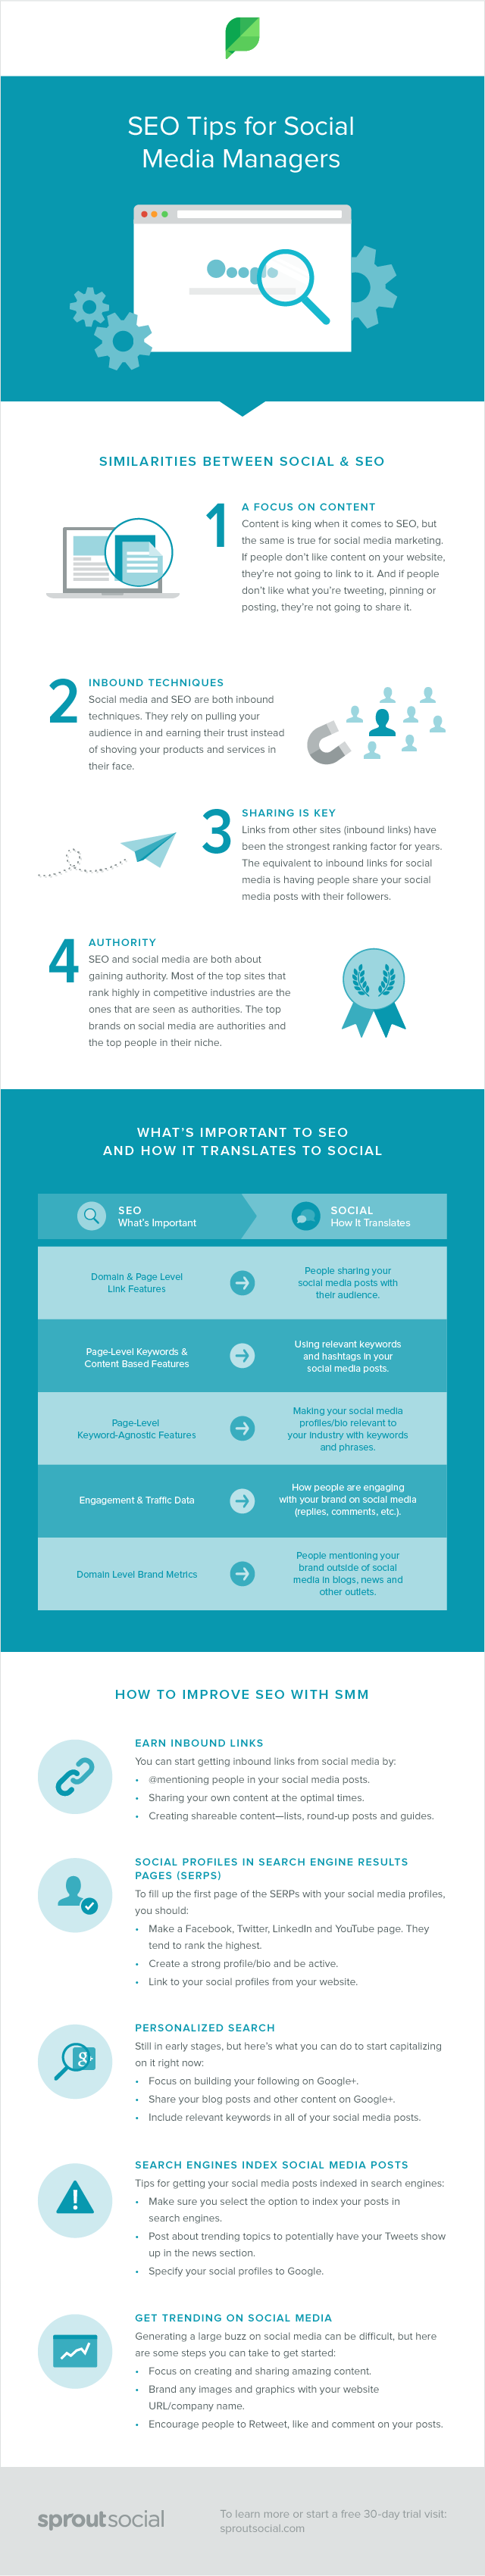 Sprout Social SEO Tips Infographic